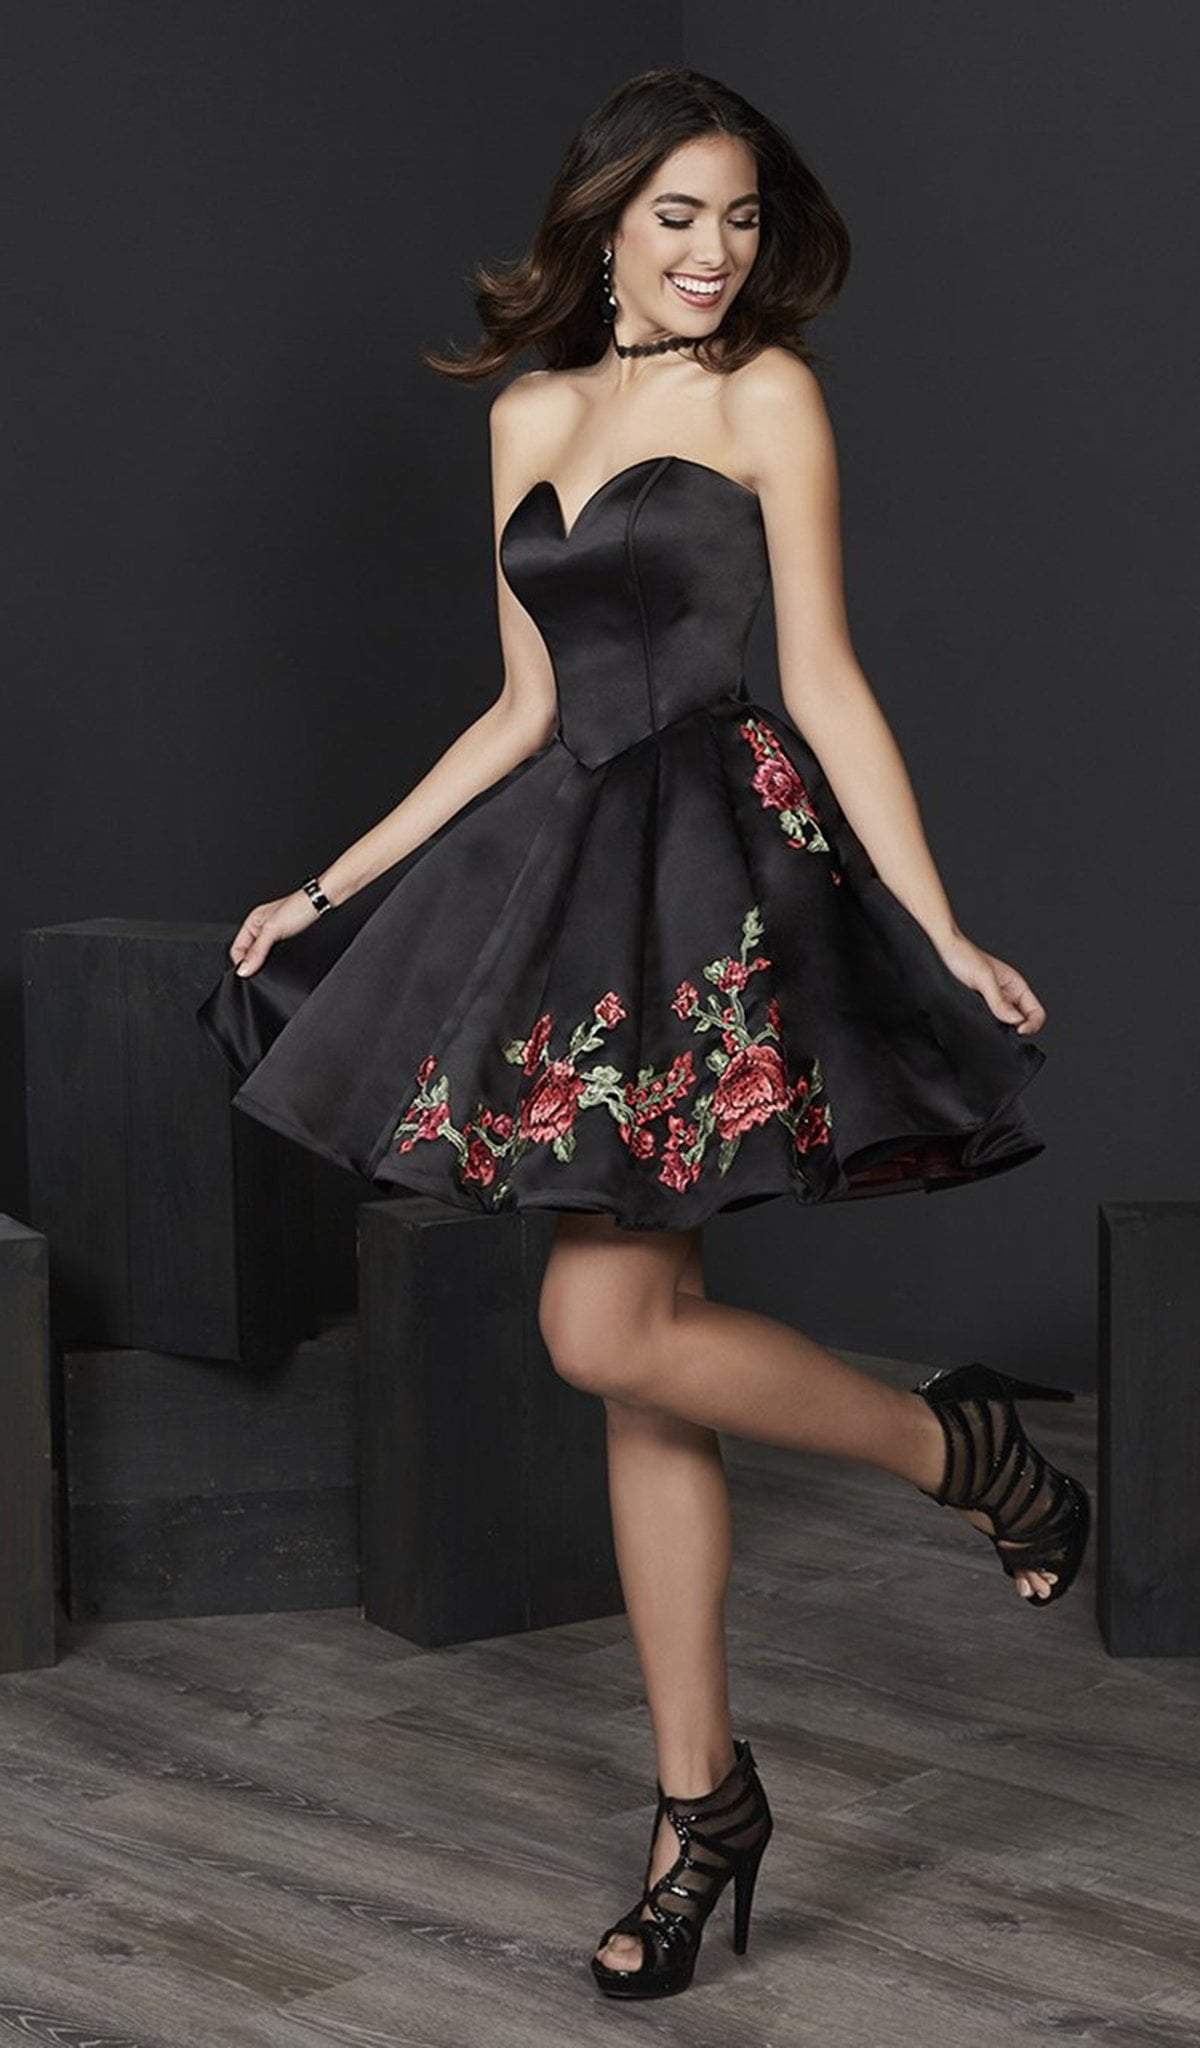 Tiffany Homecoming - 27226 Embroidered Floral Appliqued A-Line Dress from Tiffany Homecoming